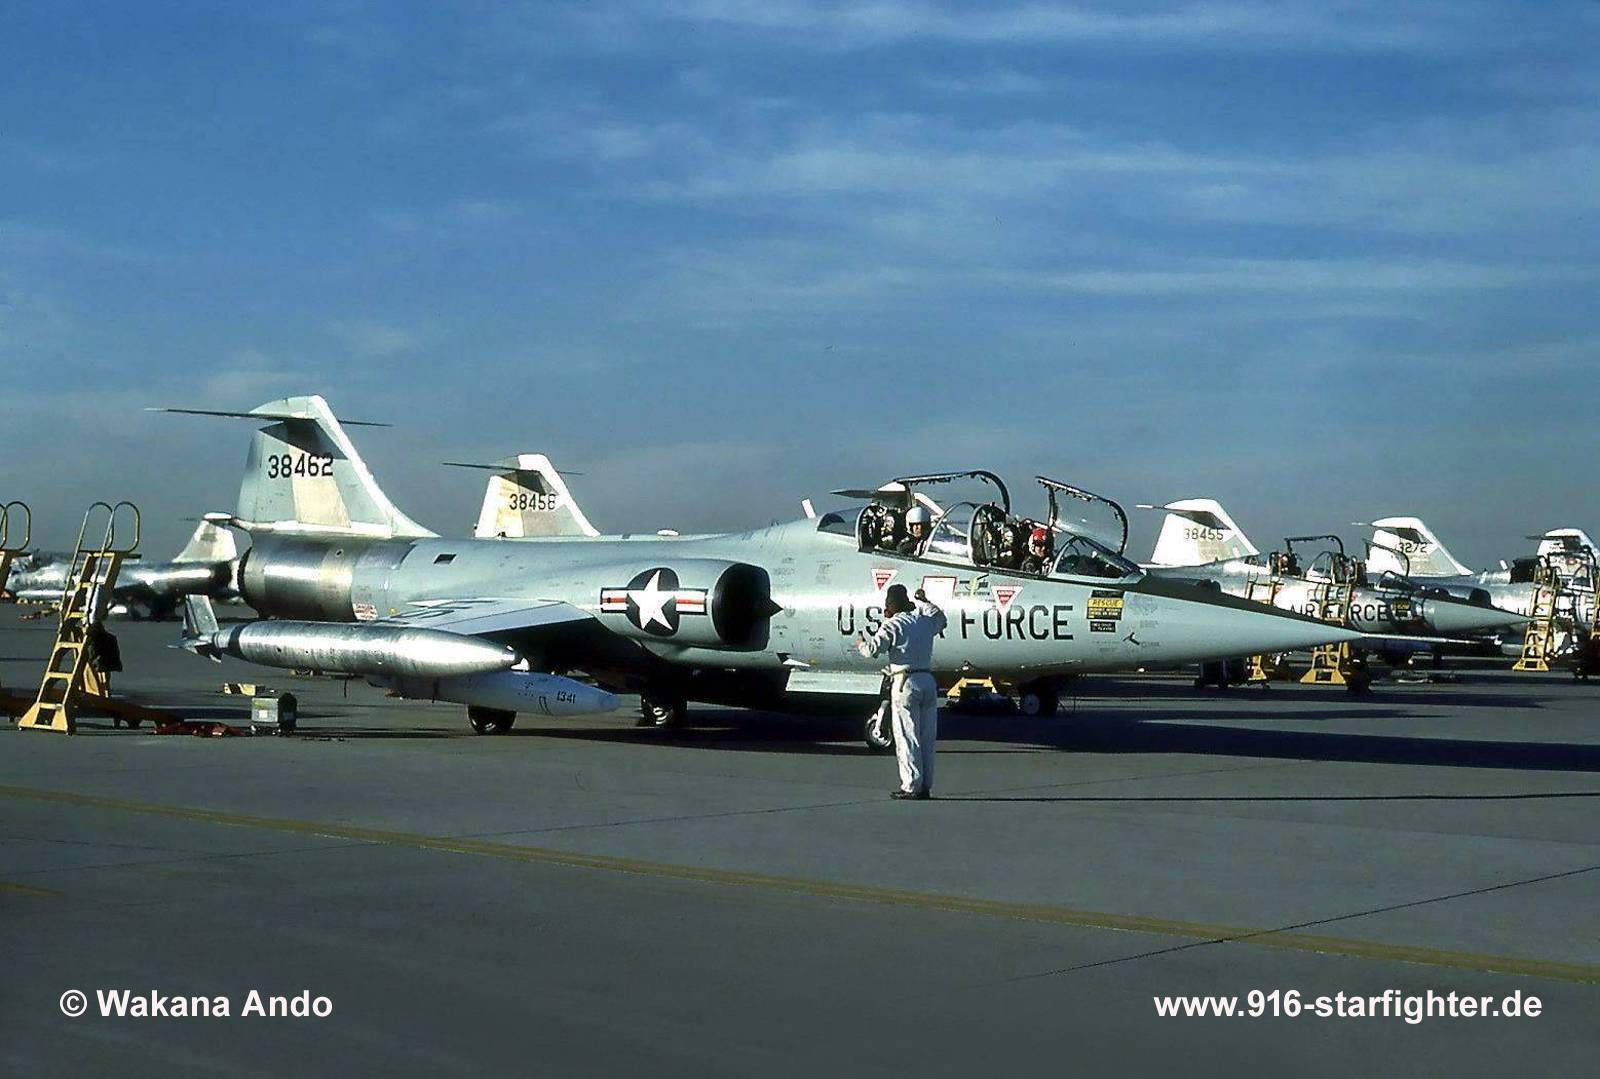 """TF-104G """"38462"""" (63-8462) ready to roll in November 1982 TF-104G,  construction number 583D-5766, model 583-10-20, US serial number 63-8462,  ..."""